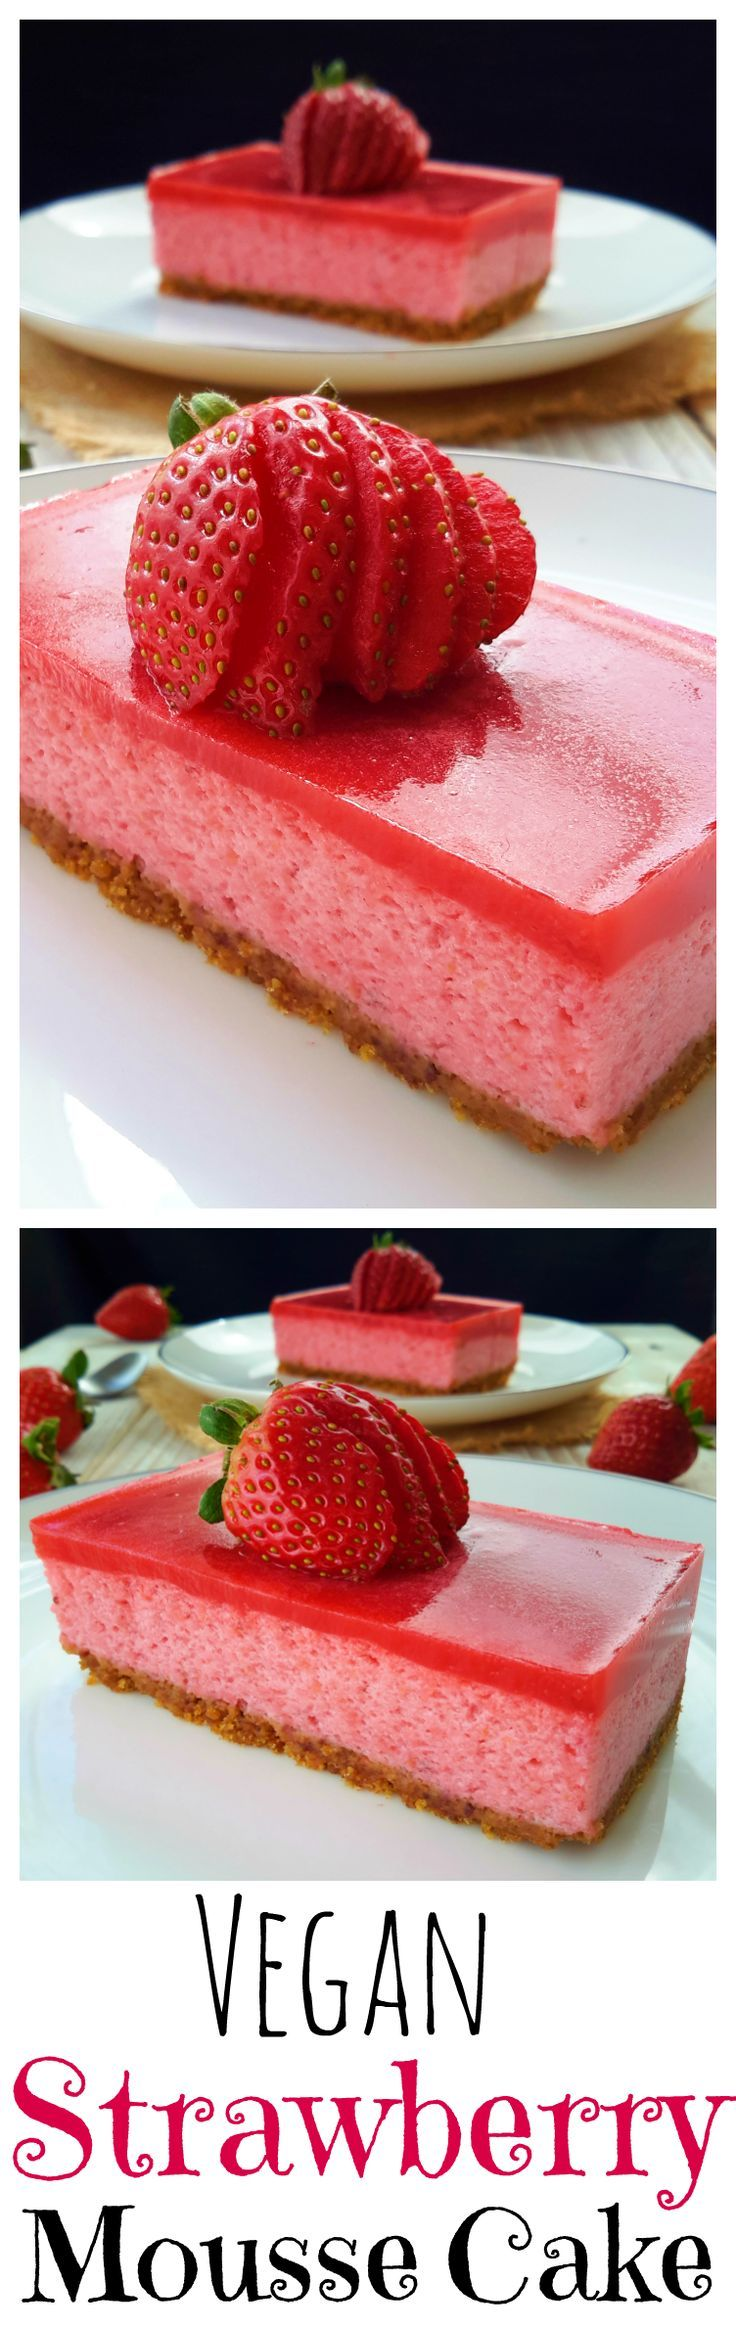 Vegan strawberry mousse cake with strawberry jelly. Made with aquafaba and coconut cream for the perfect balance of creaminess and airiness.